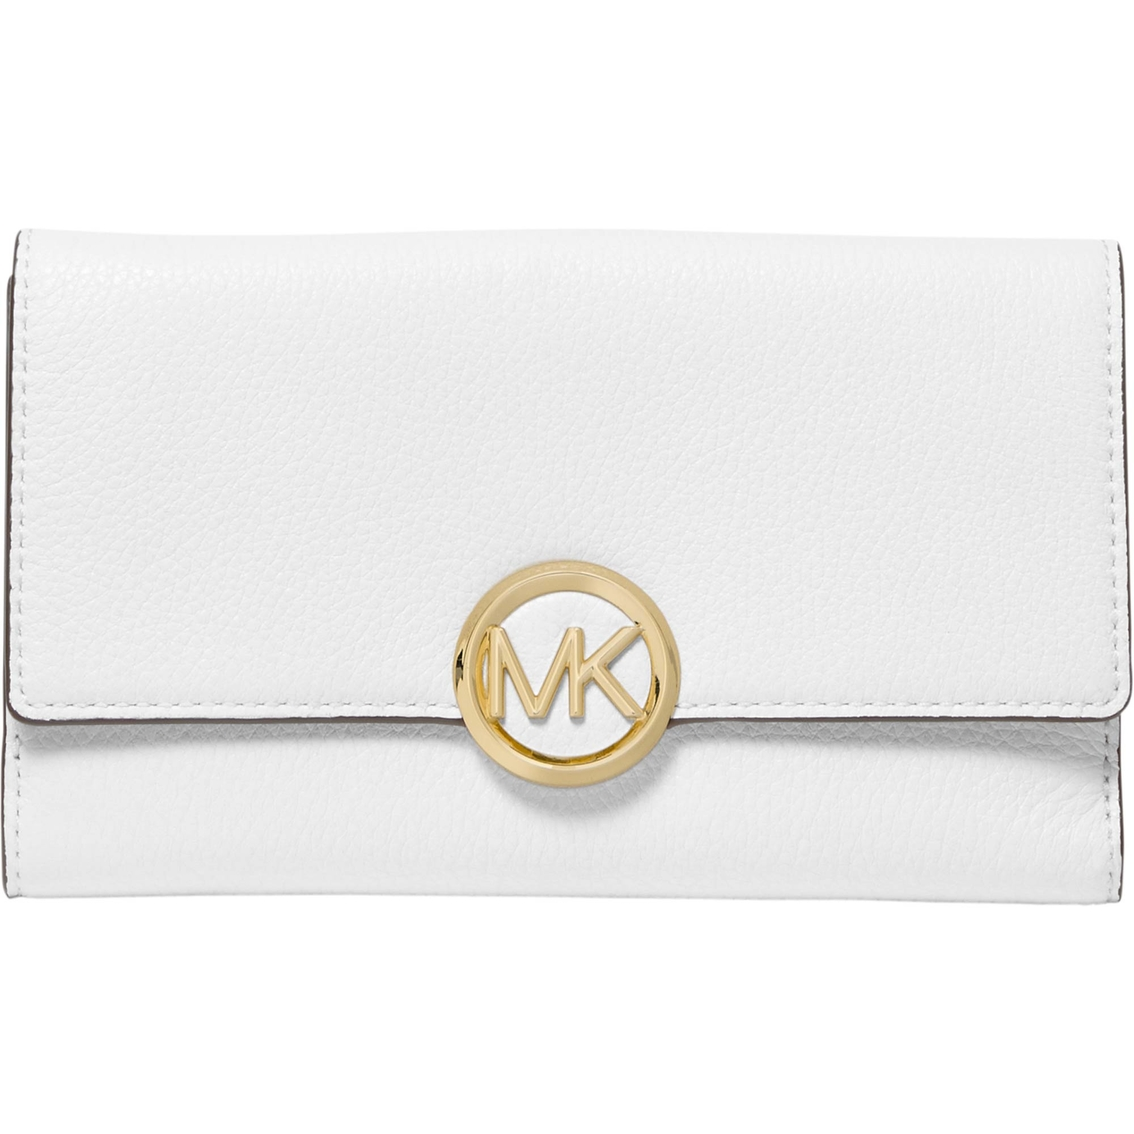 f6972043184390 Michael Kors Lillie Large Leather Carryall | Wallets | Handbags ...